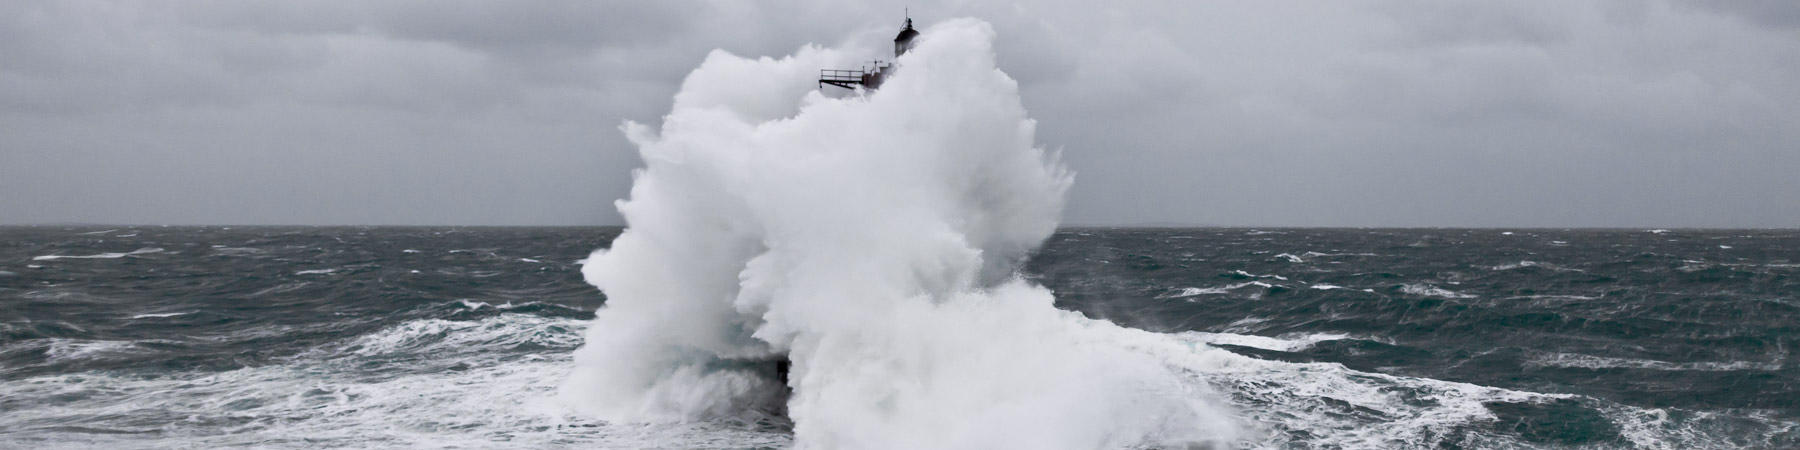 Winters storms on Brittany coasts - Photo Plisson